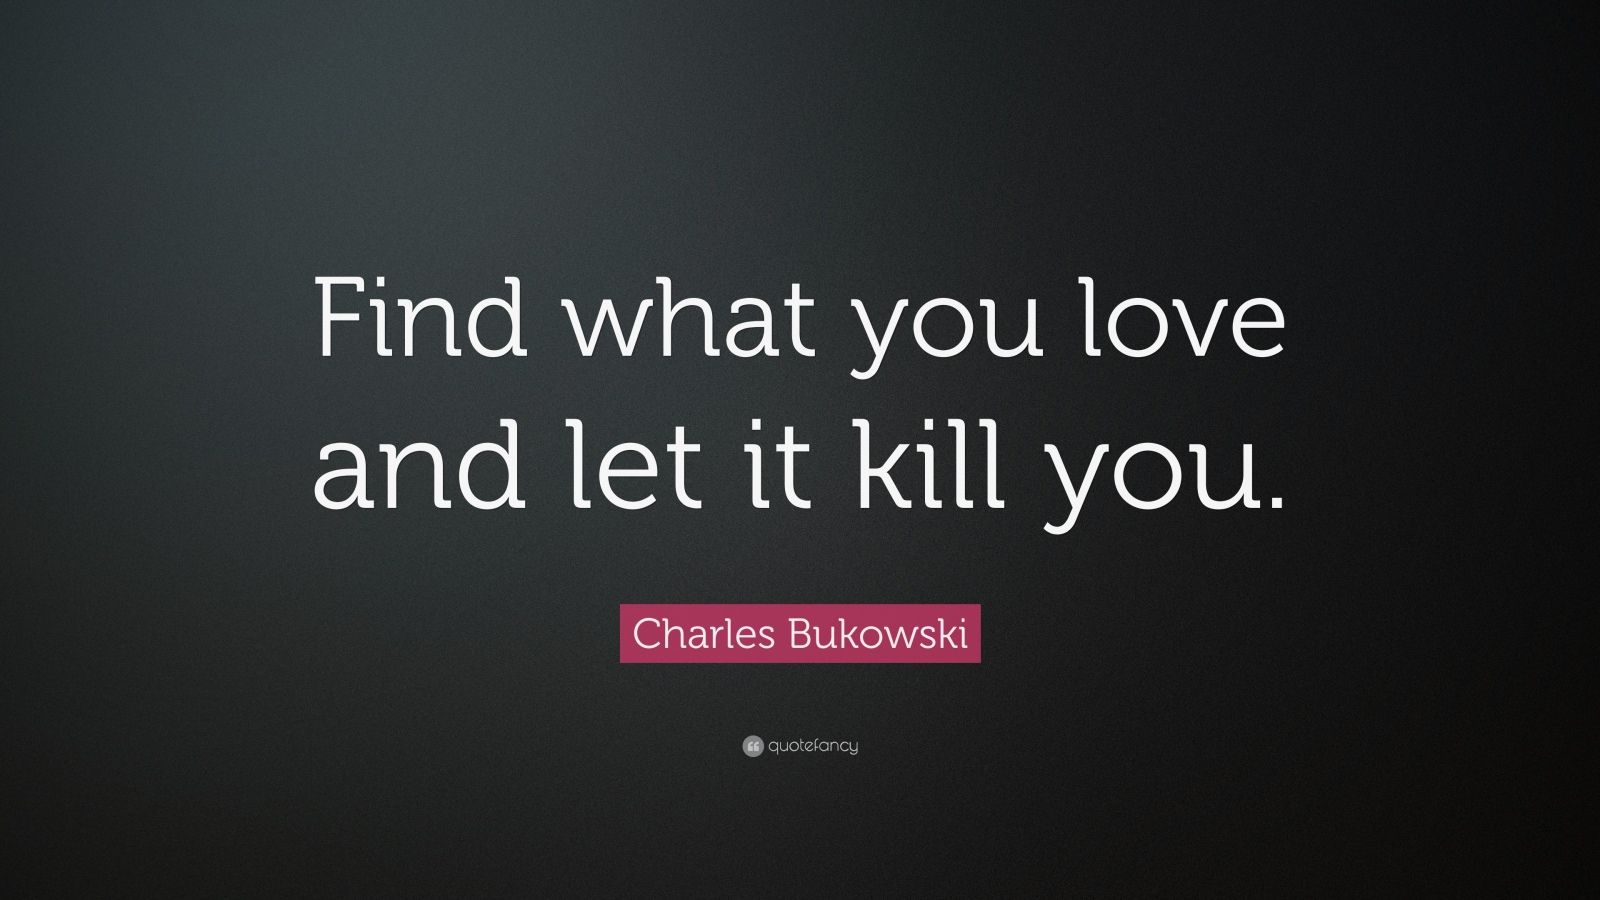 find what you love and let it kill you miguel The guardian - back to home make a charles bukowski, hero of angsty teenagers the world over, instructs us to find what you love and let it kill you.